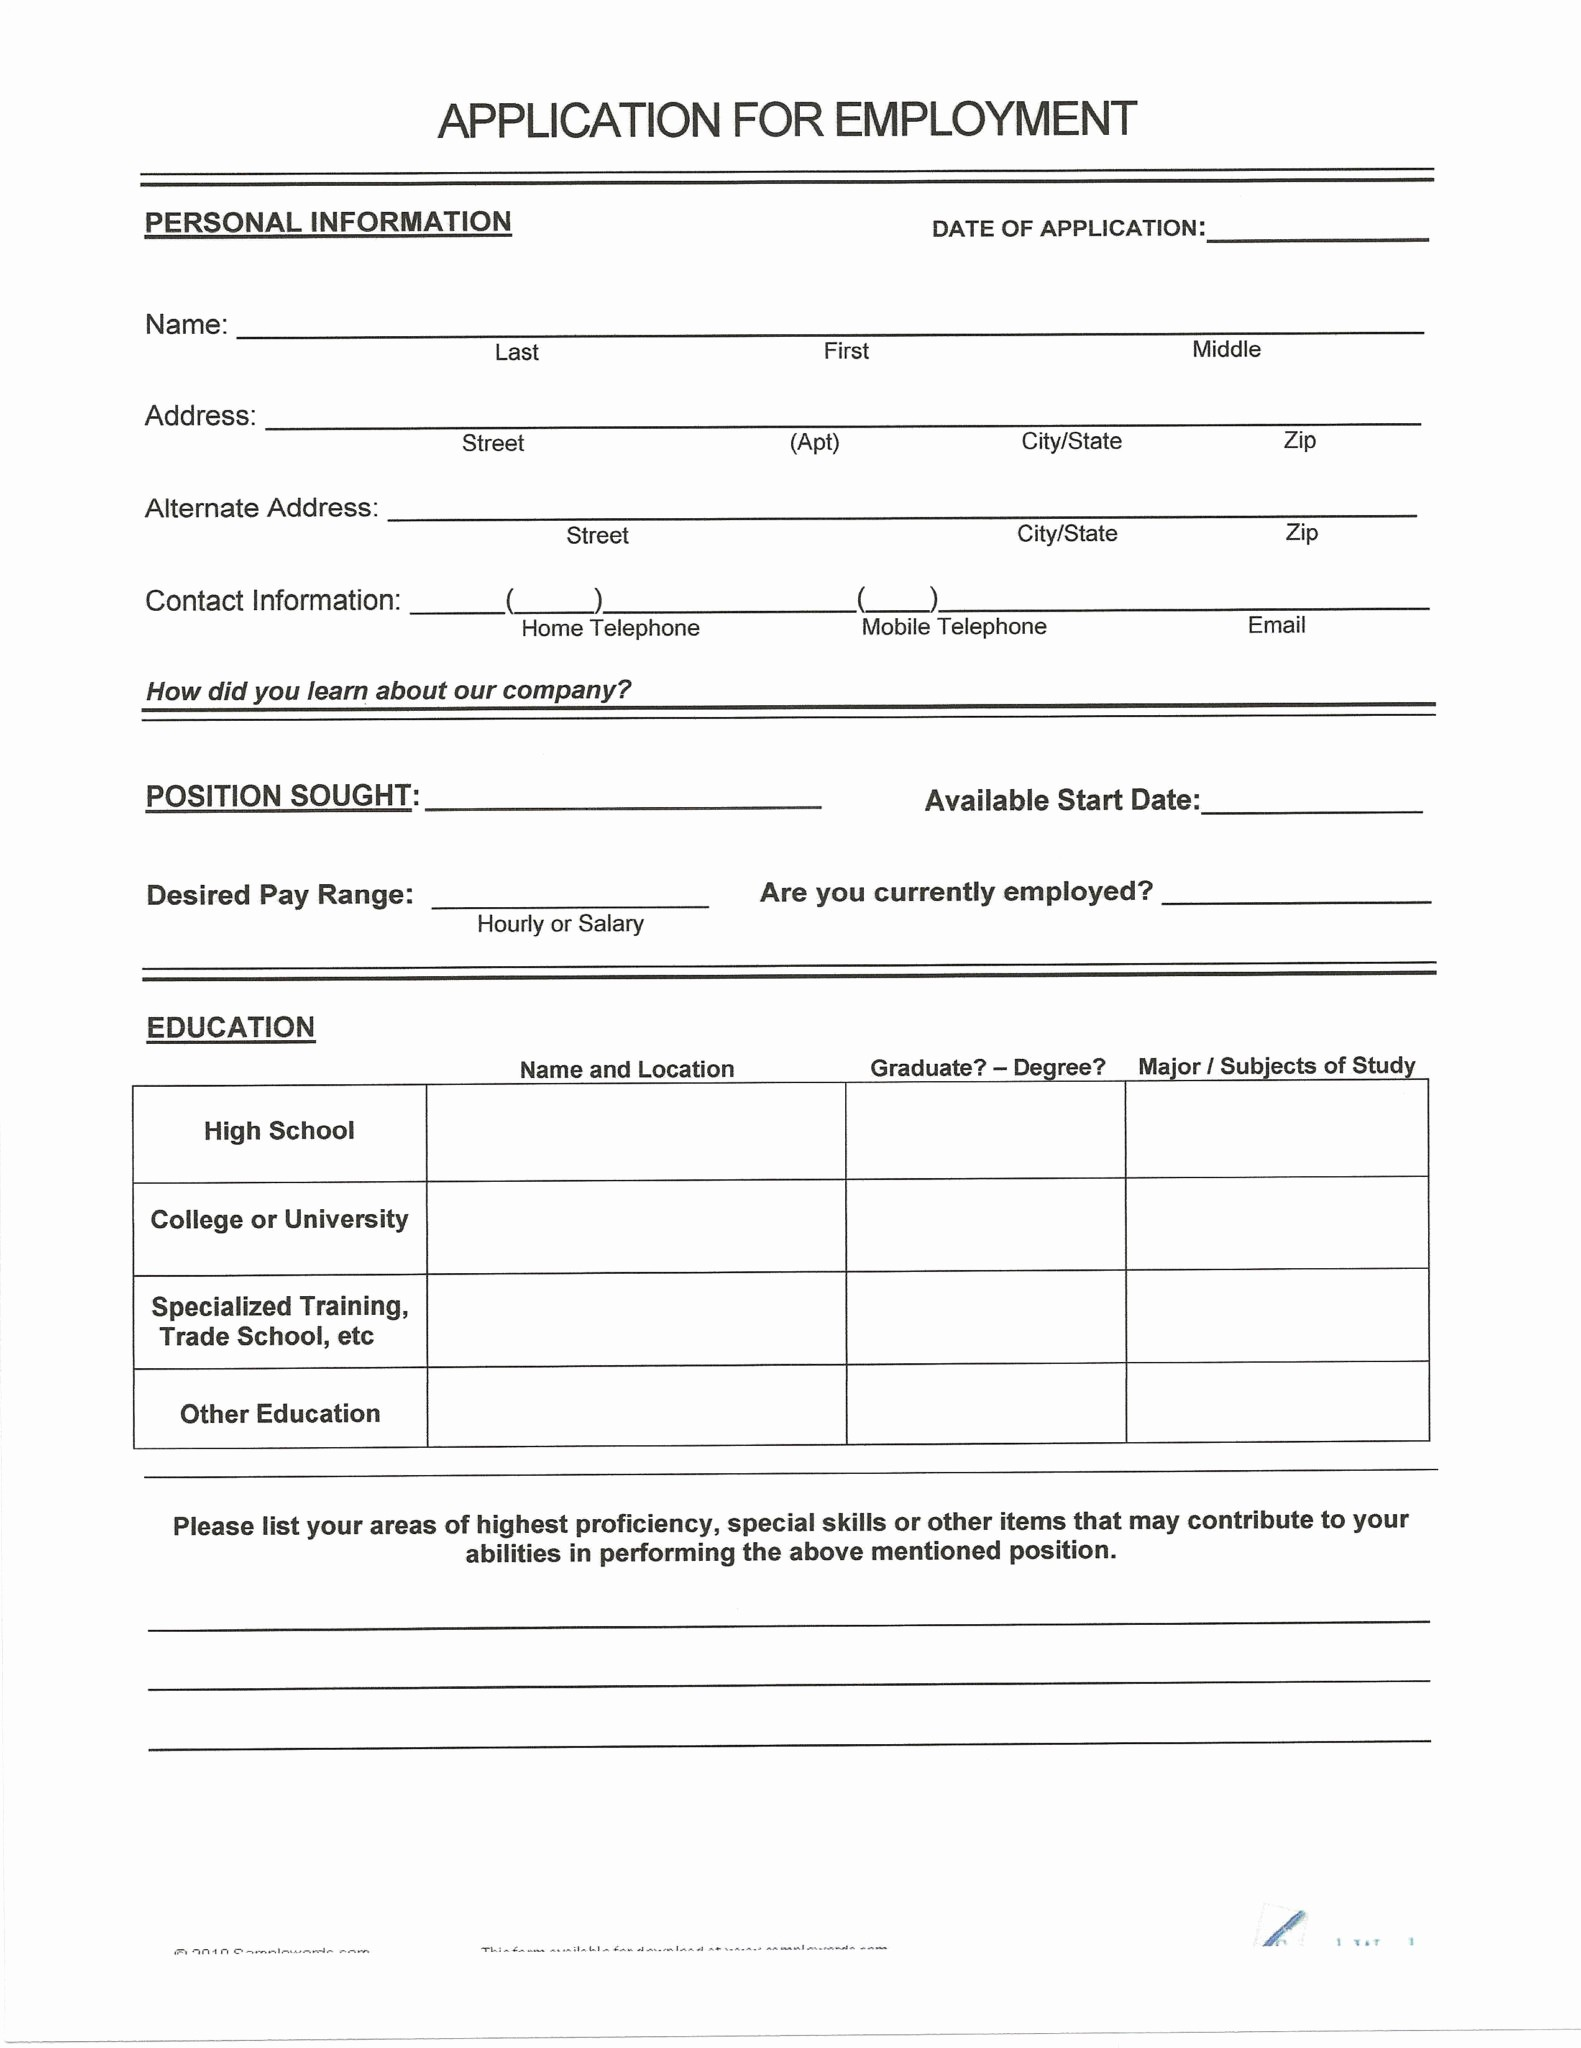 Resumes Fill In the Blanks Unique Free Resumes to Fill Out and Print